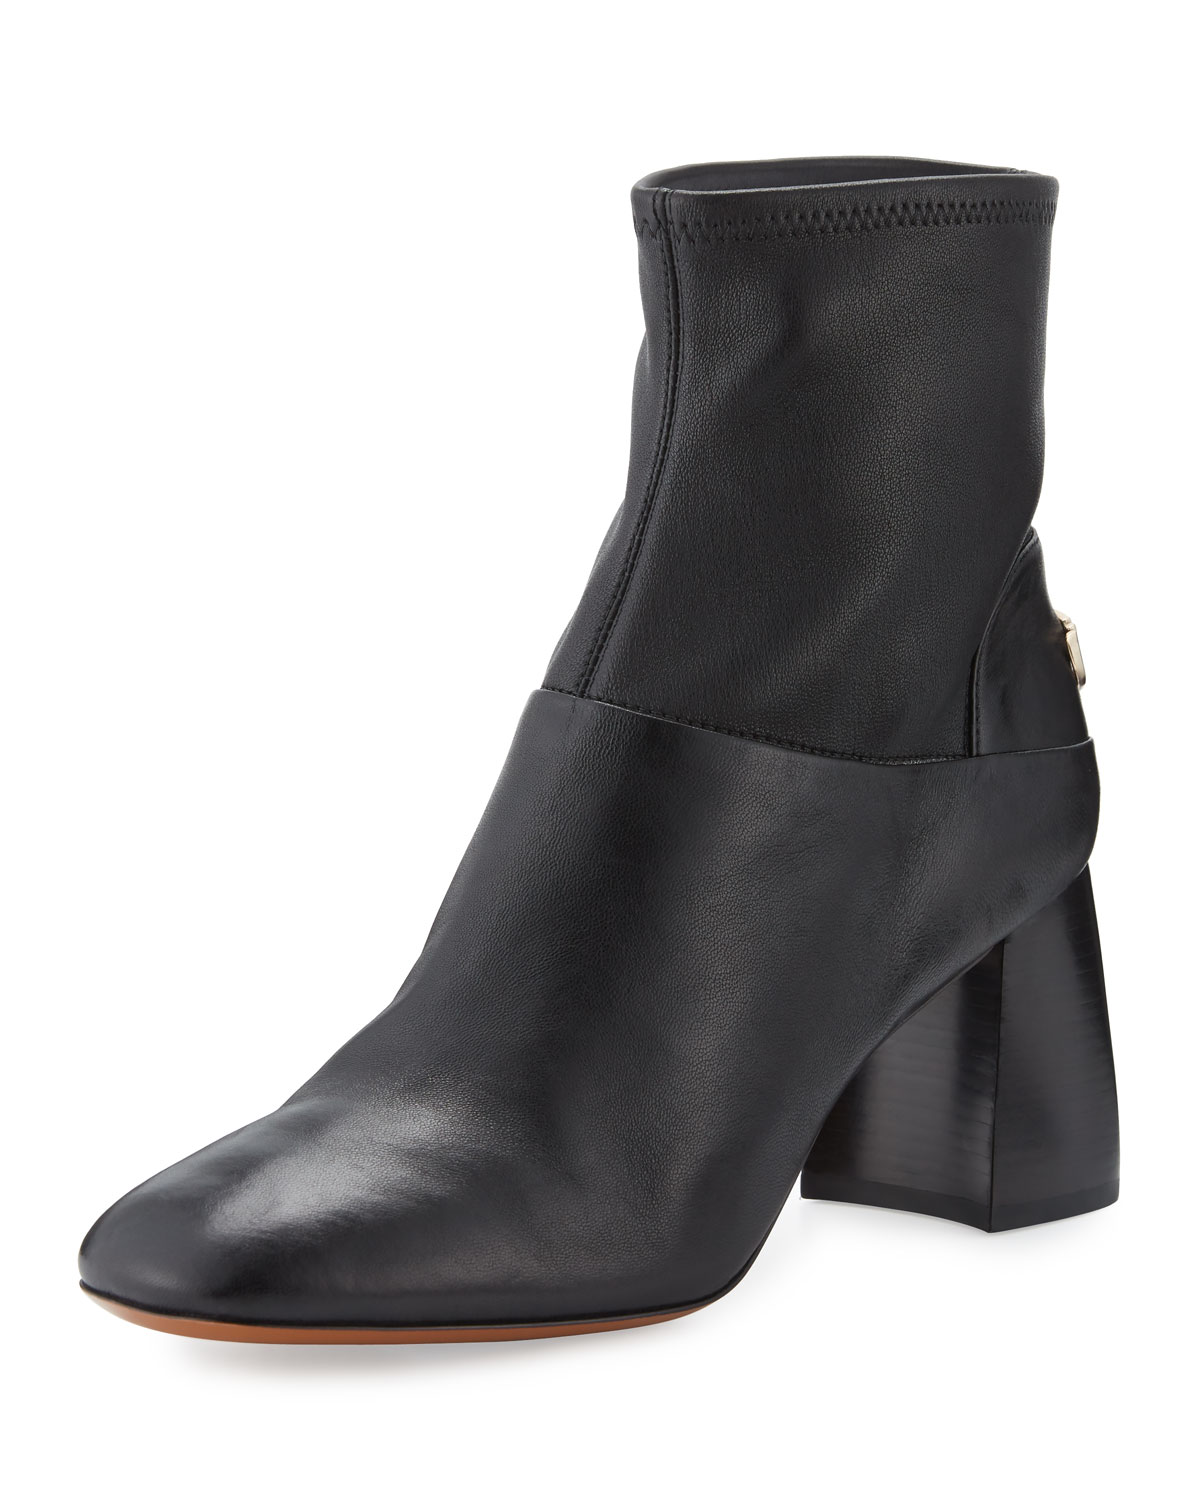 f5116c307849 Tory Burch Sidney Leather 70mm Bootie